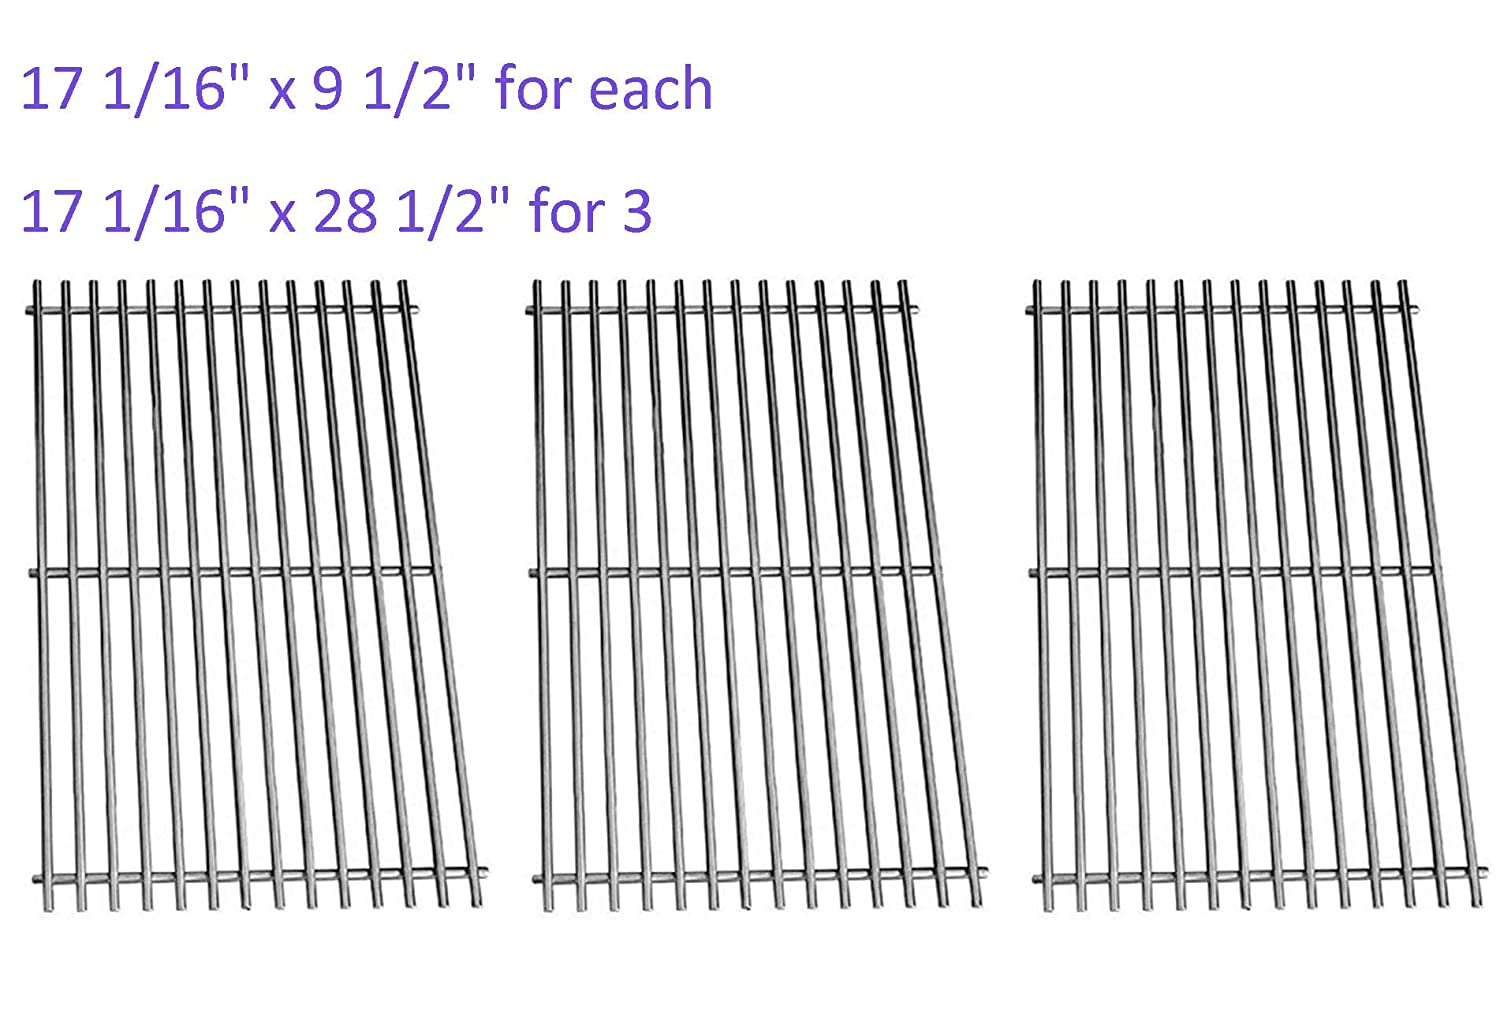 Grill Grate 17 1/16 Grill Replacement Parts for Charbroil 463242715, 463242716, 463276016, 466242715, 466242815, Stainless Steel(3 Pack, 17 1/16 x 9 1/2) 17 1/16 x 9 1/2) Sweetcook